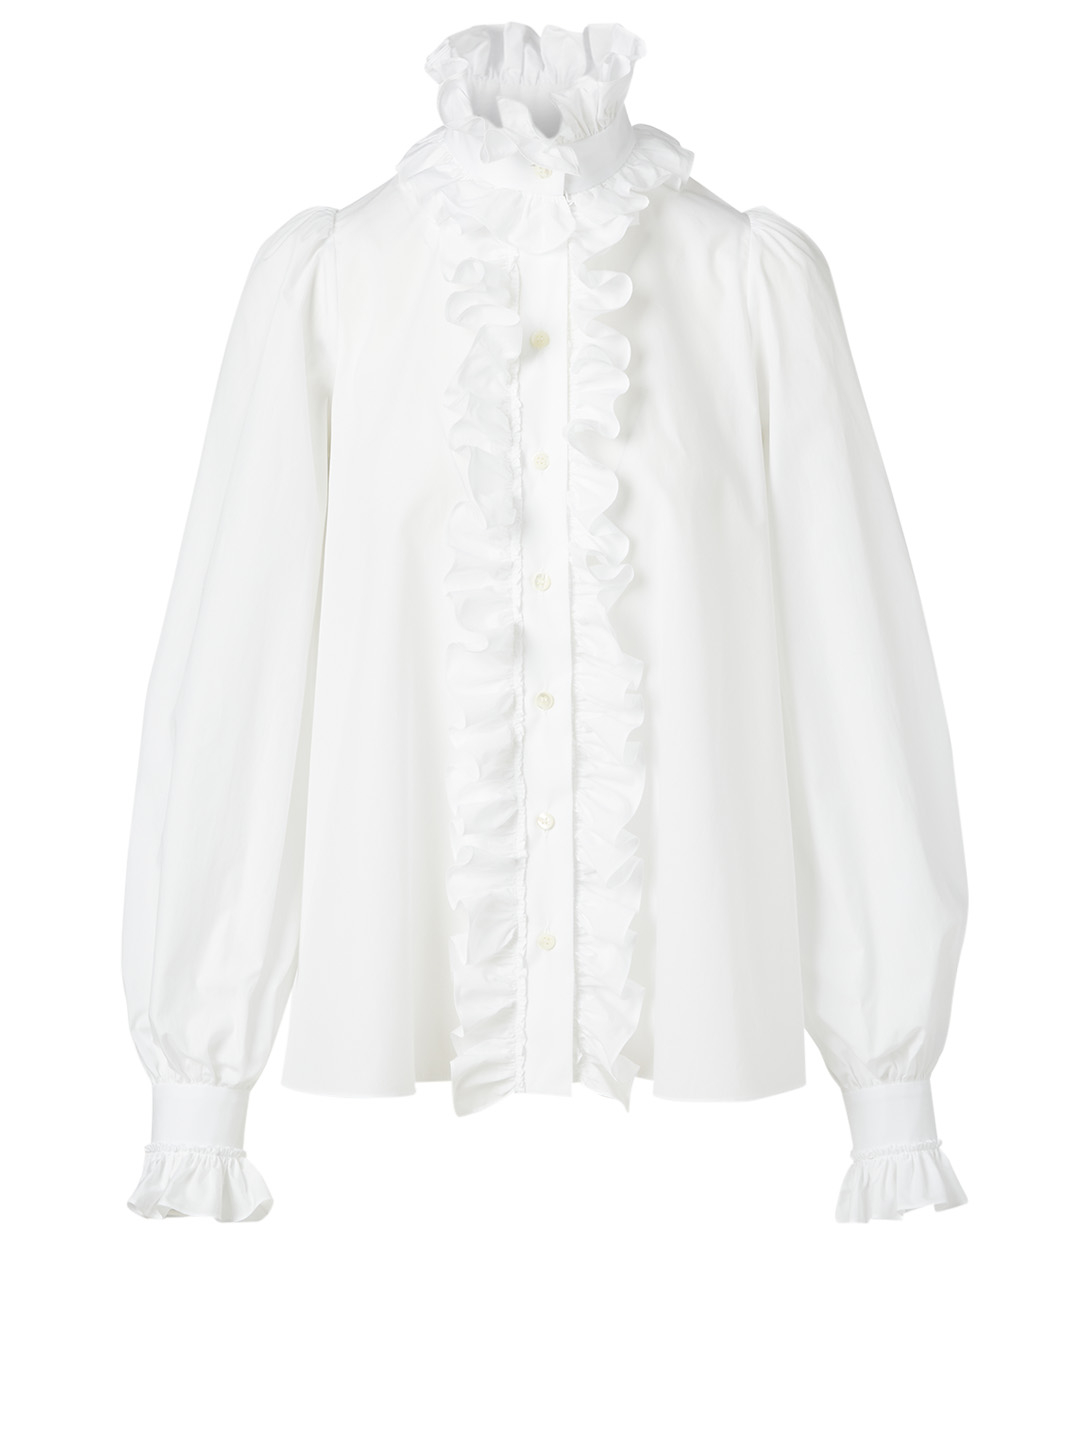 DOLCE & GABBANA Cotton Ruffle Shirt Women's White